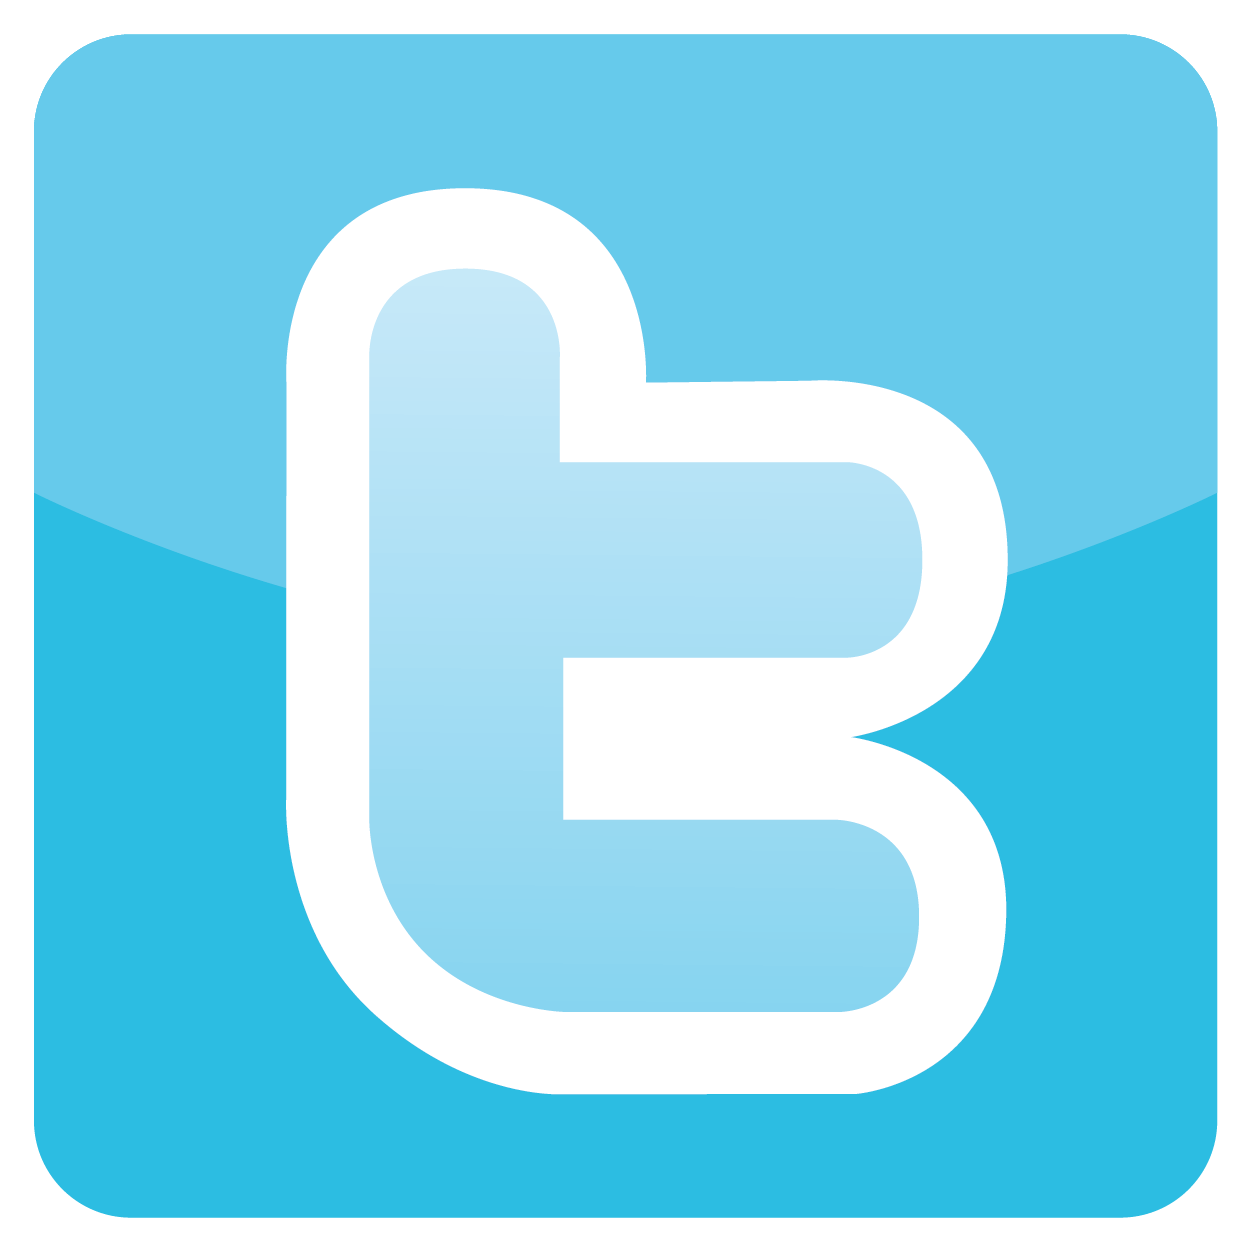 Twitter Icon Vector Logo